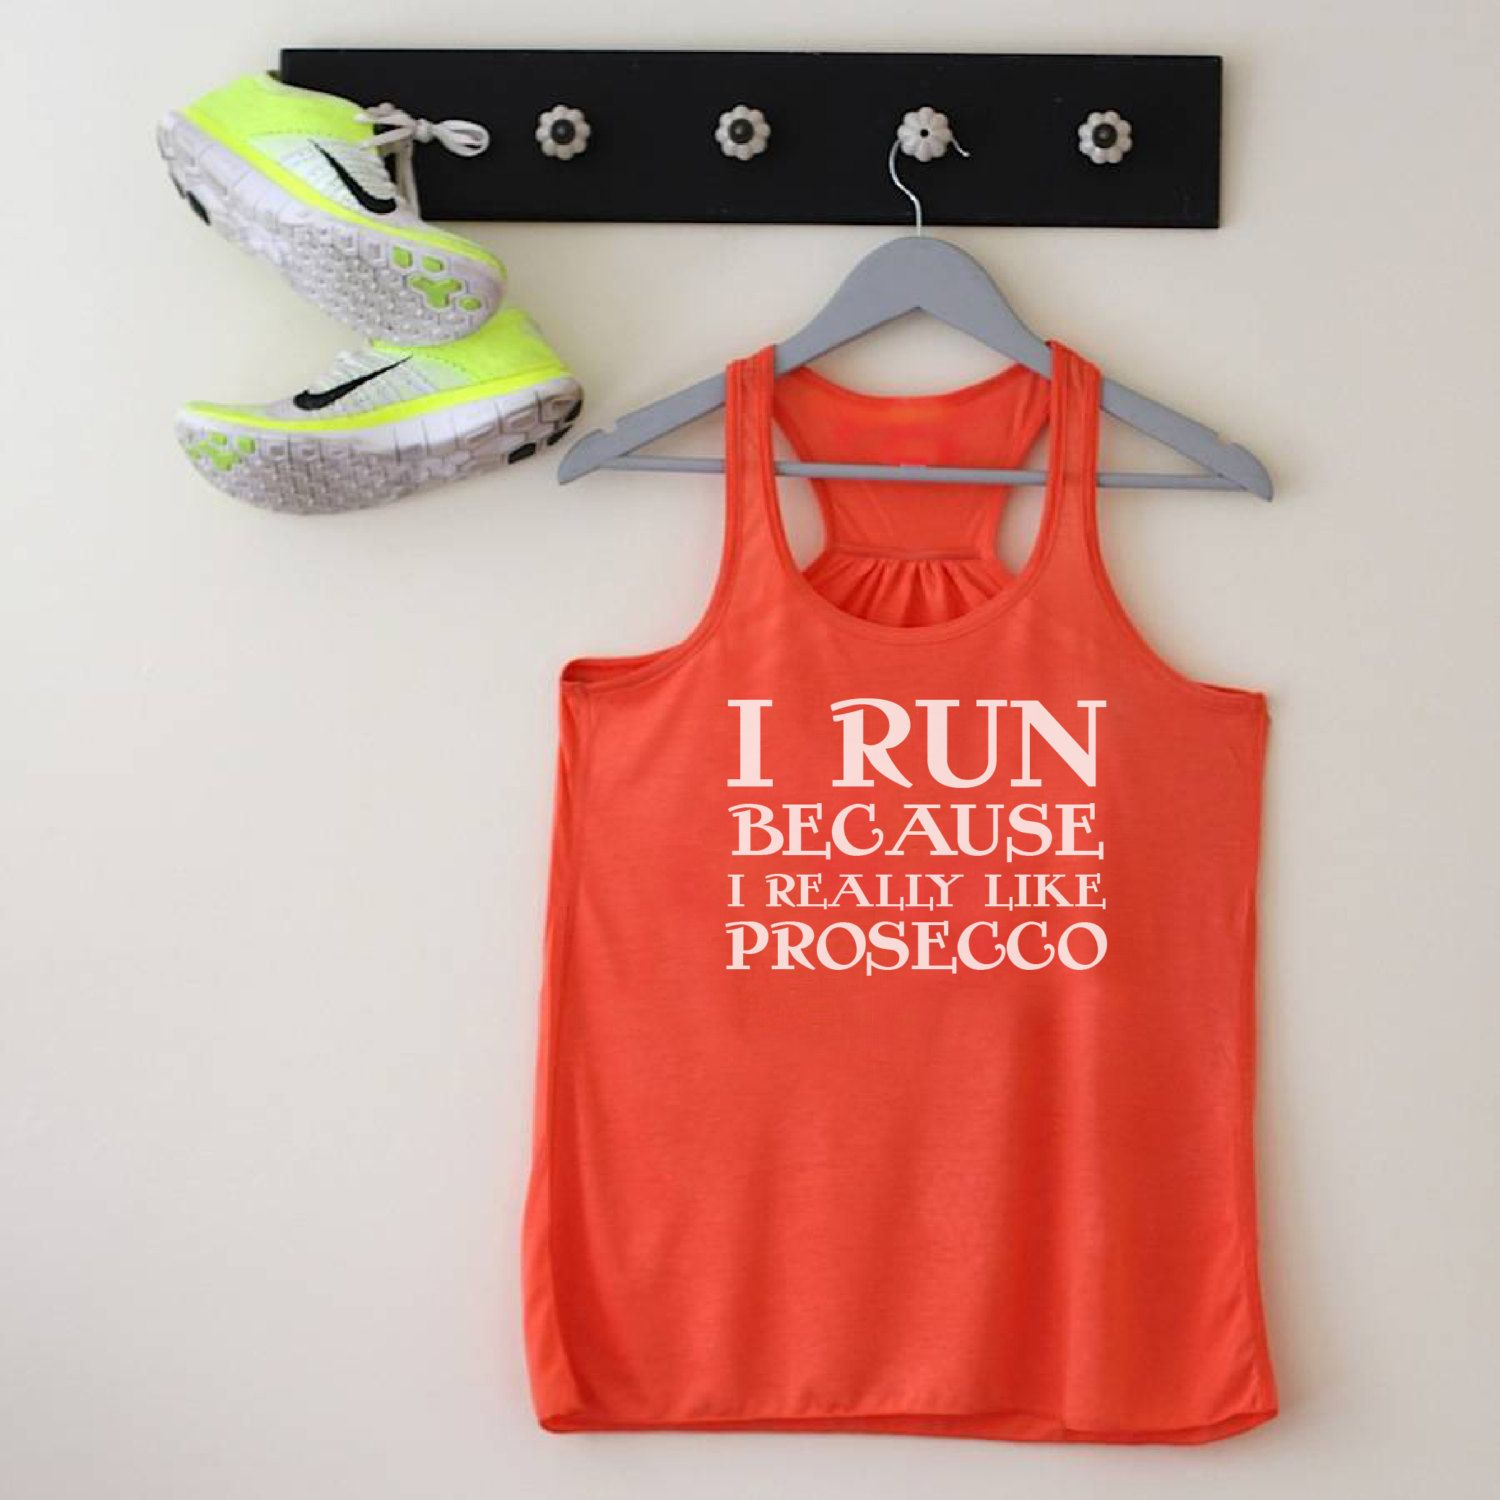 Amazing Funny Presents For Her Part - 9: Funny Running Racerback Tank For Prosecco Lovers - Prosecco Gift - Gifts  For Her - Gifts